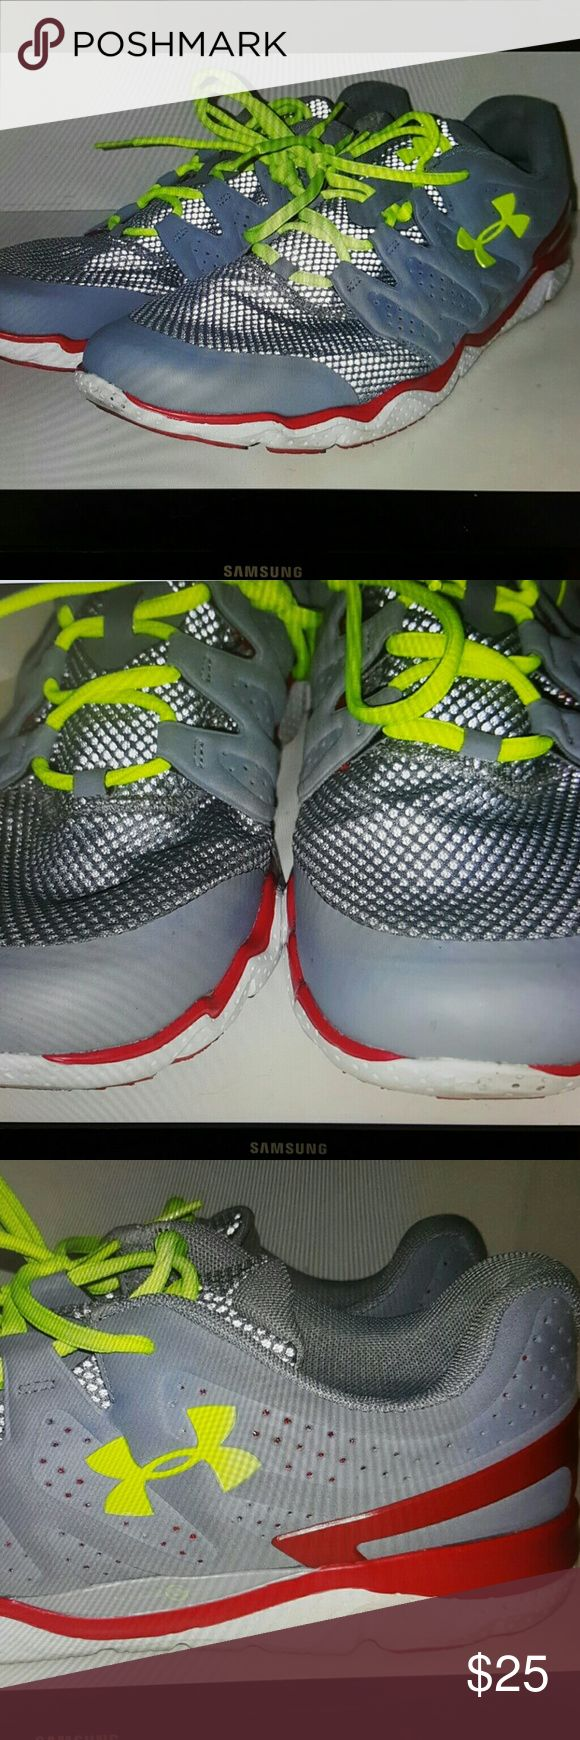 Under armour mens shoes size 13 Under armour mens shoes micro G Athletic shoes Gray, green, red Size 13 mens Under Armour Shoes Athletic Shoes